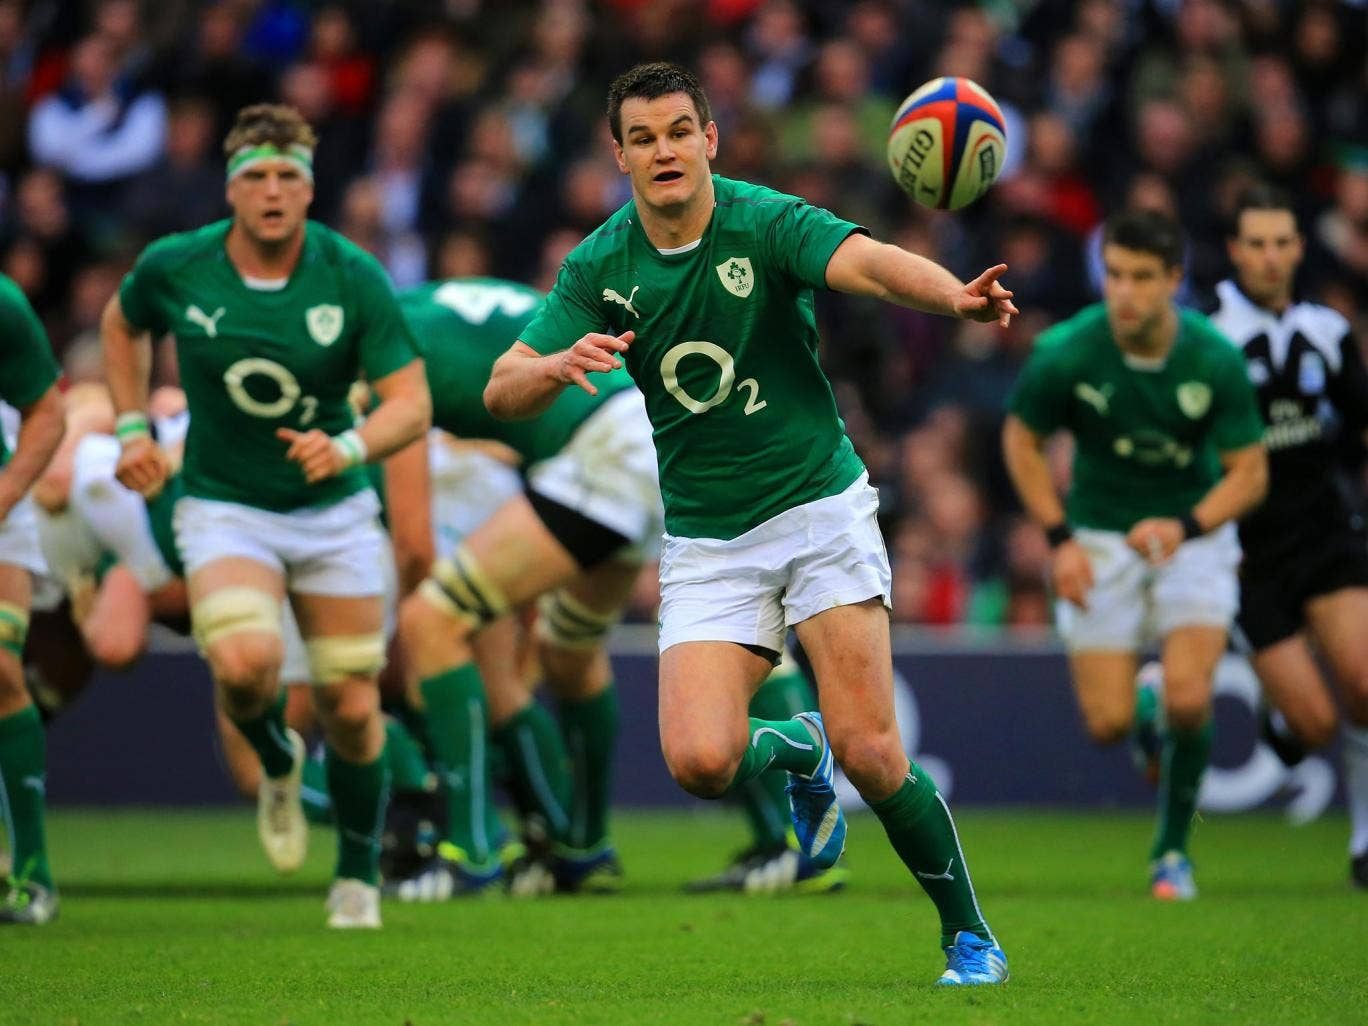 Jonathan Sexton has been passed fit for Ireland's match against Italy